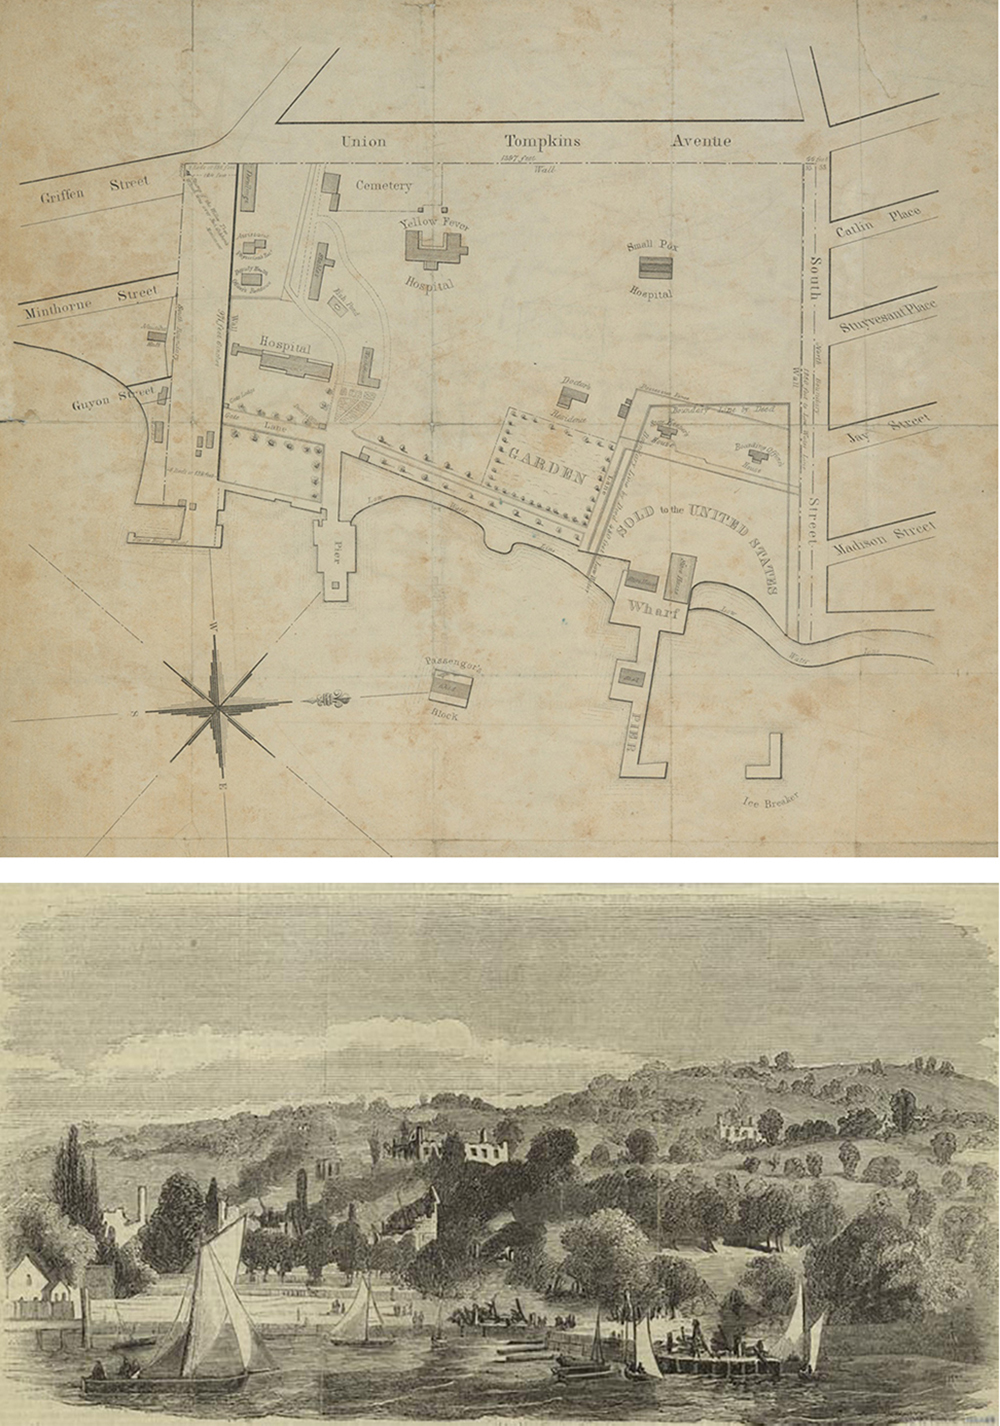 Top: Map of the Marine Hospital, 1845. Bottom: The ruins of the quarantine establishment on Staten Island, 1858. The New York Public Library.